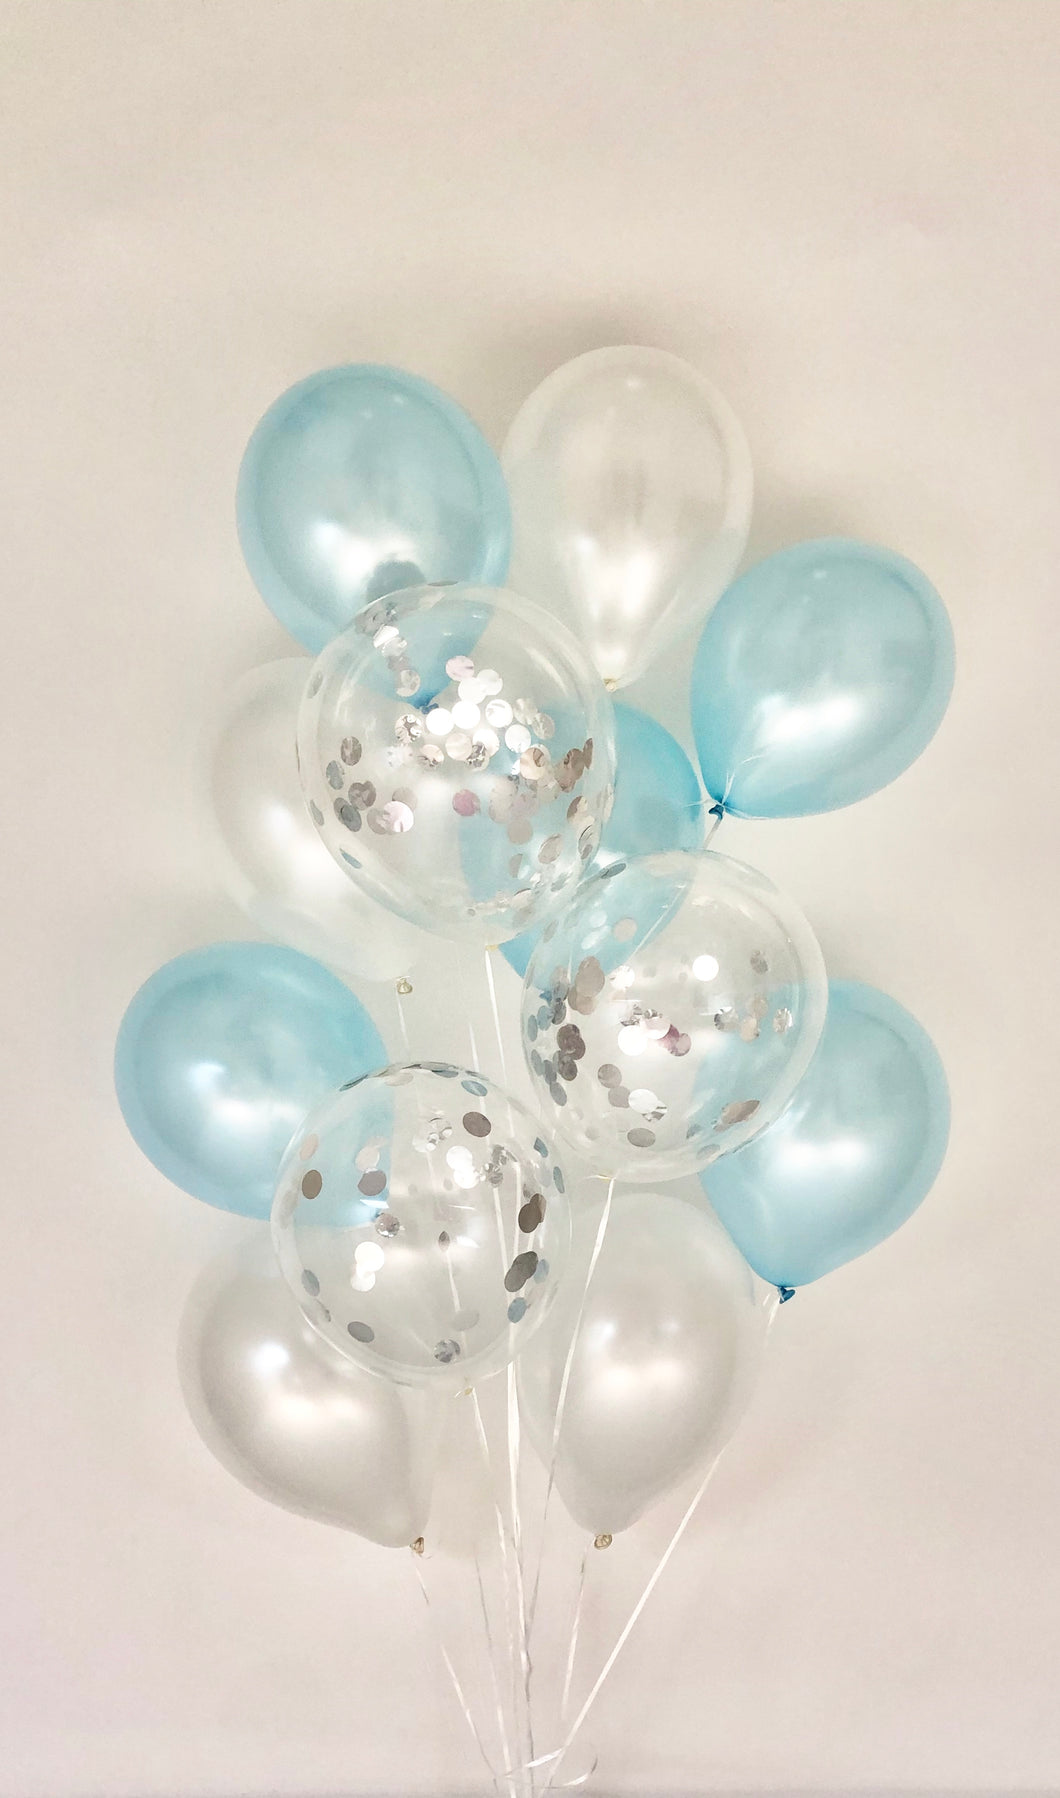 Sweet Moon 12 Piece Latex Balloons Bouquet - Baby Shower, Birthday, Gender Reveal, Eid, and Ramadan Party Decoration (Baby Blue)